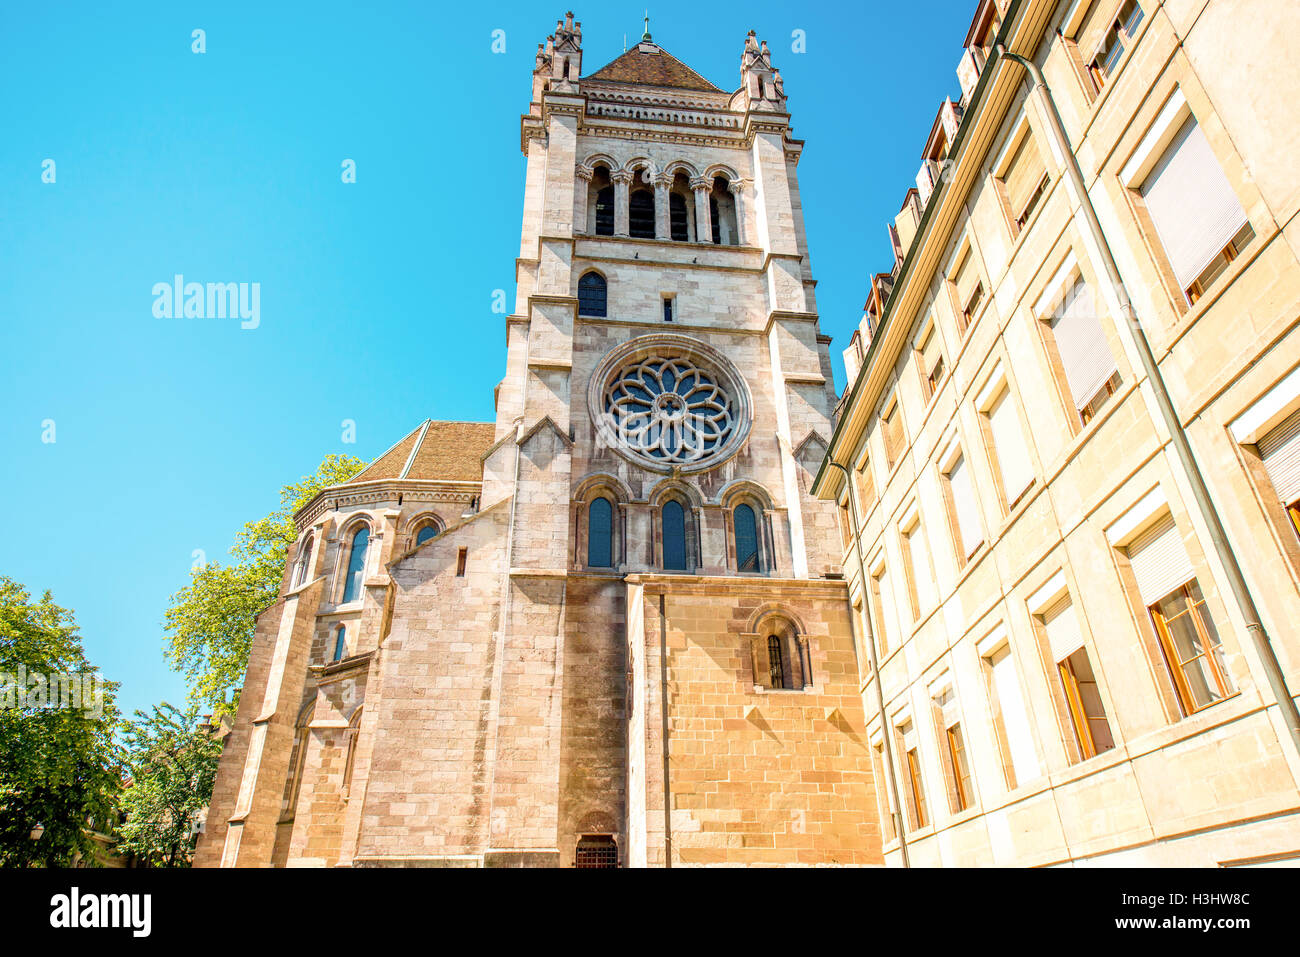 Geneva old town - Stock Image